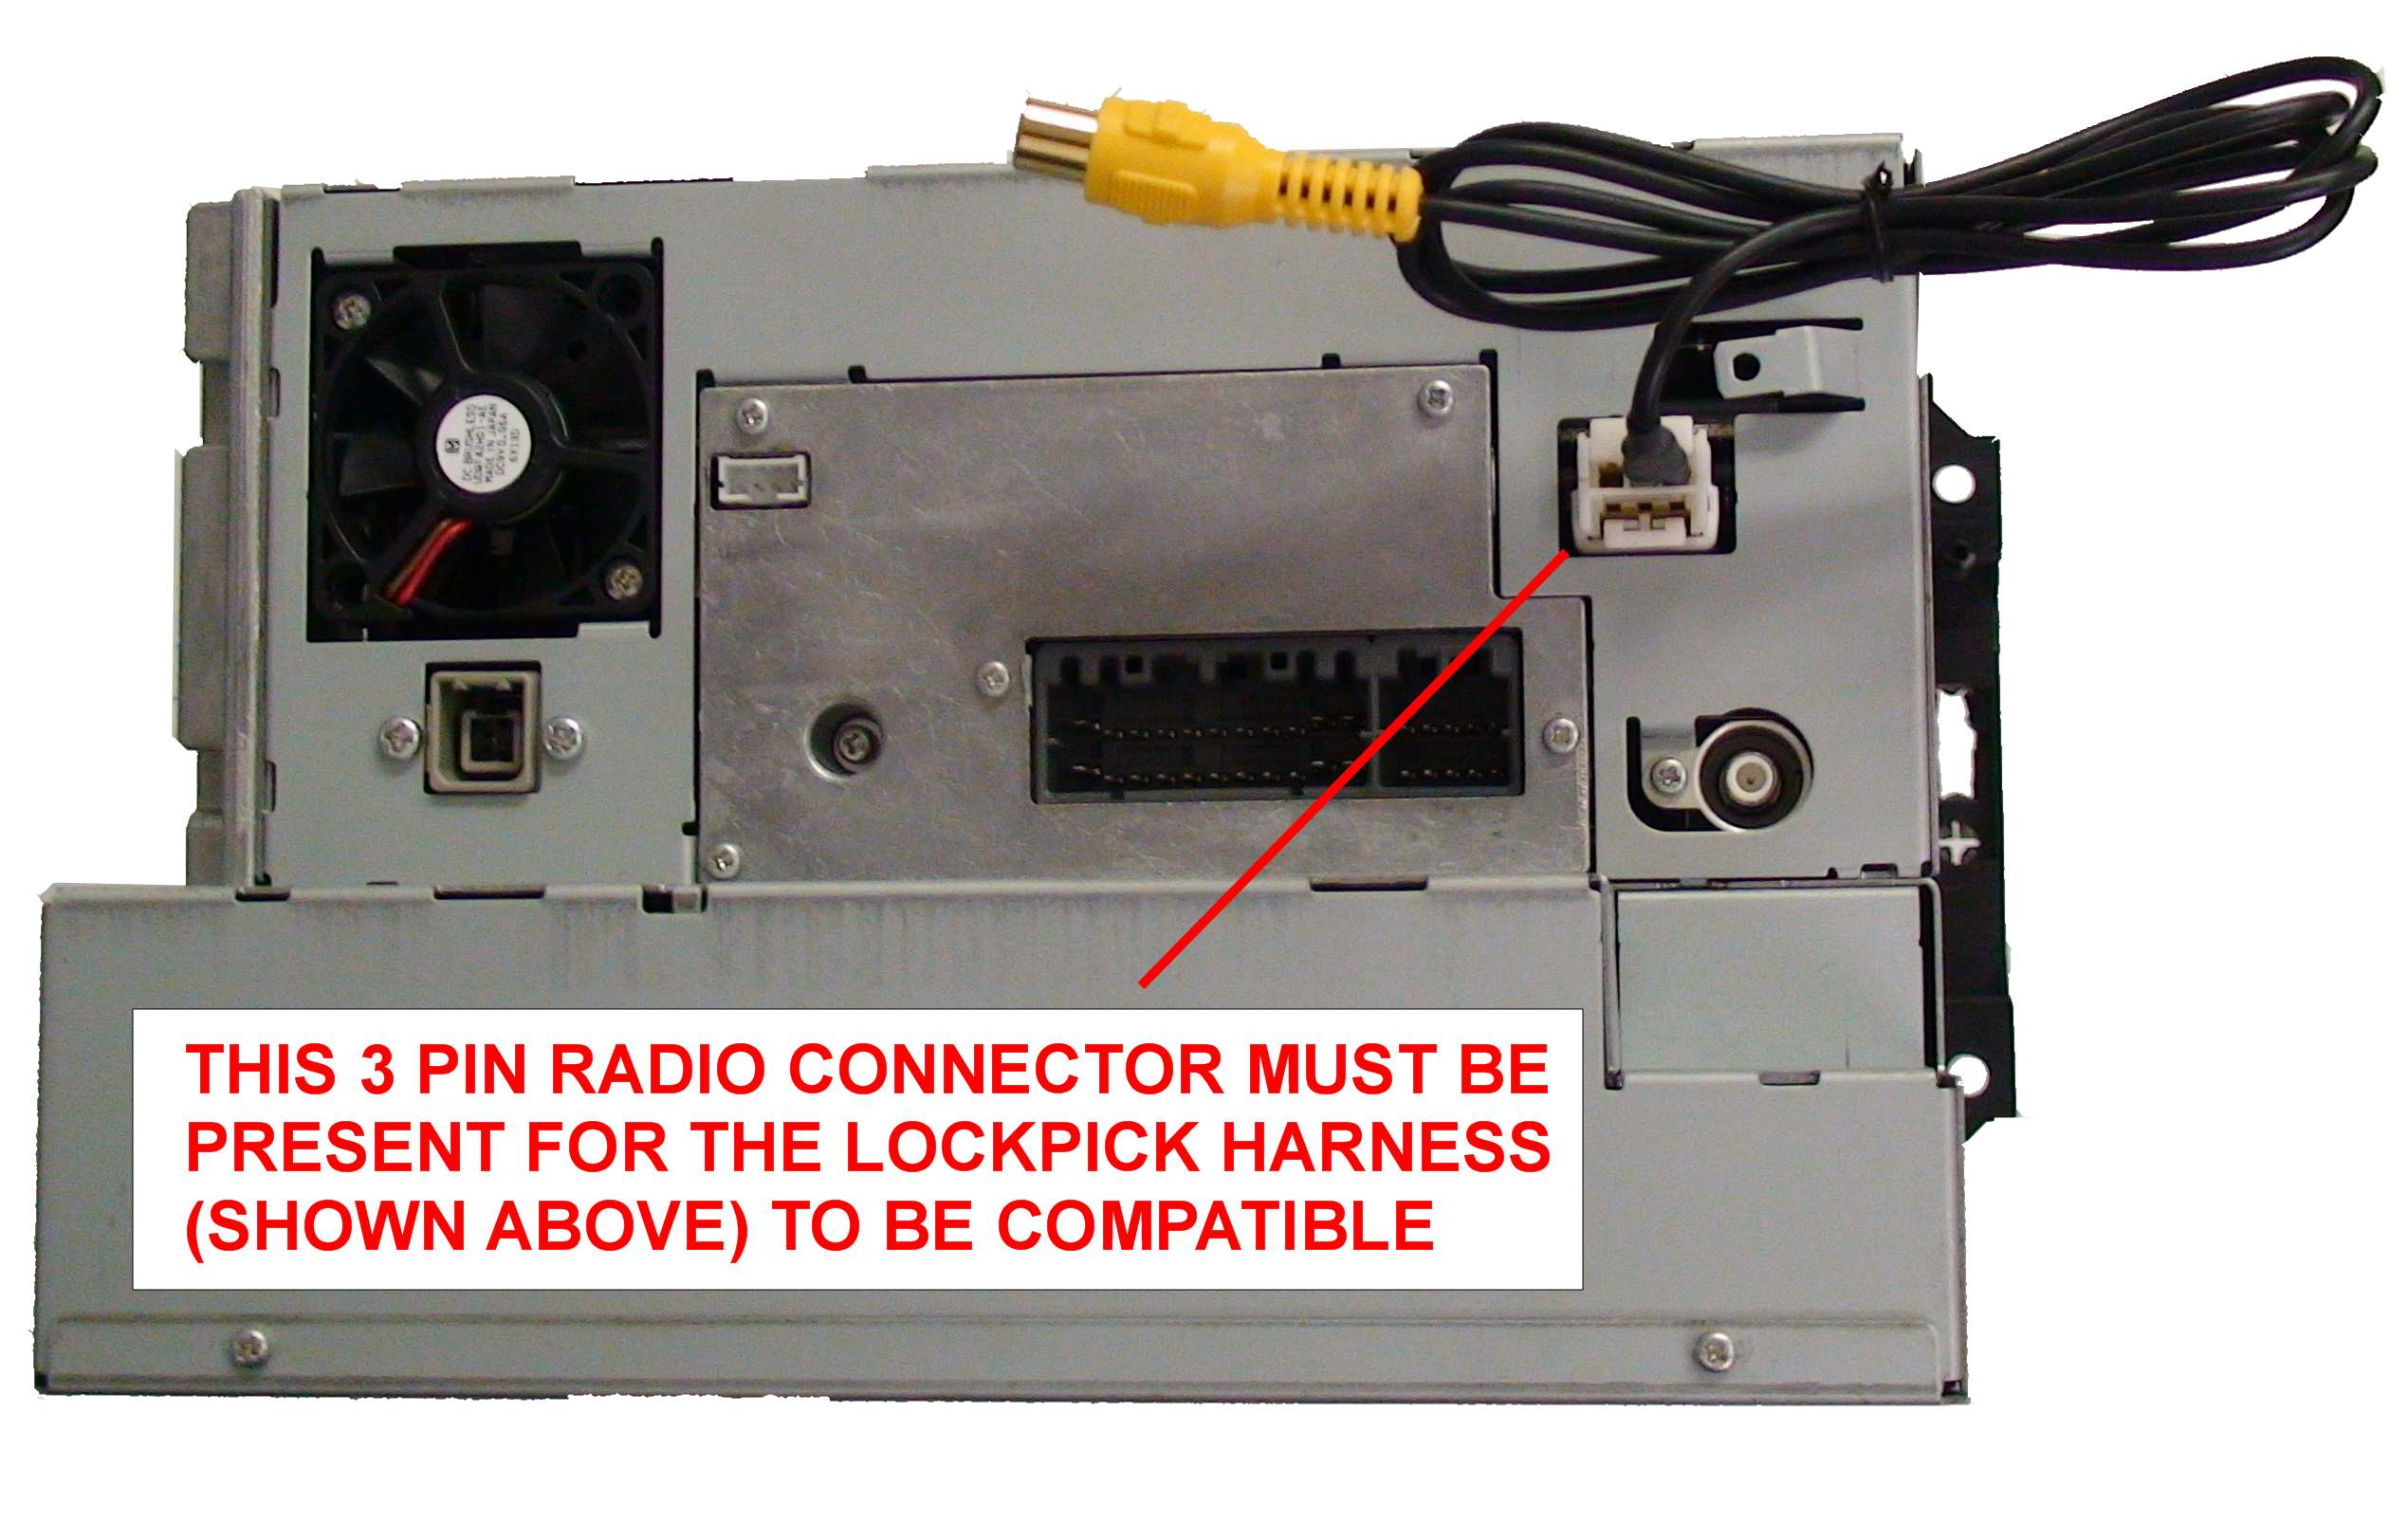 Rec Radio Wiring Diagram 24 Images 2006 Chrysler 300 Nav Lockpick Back2 At